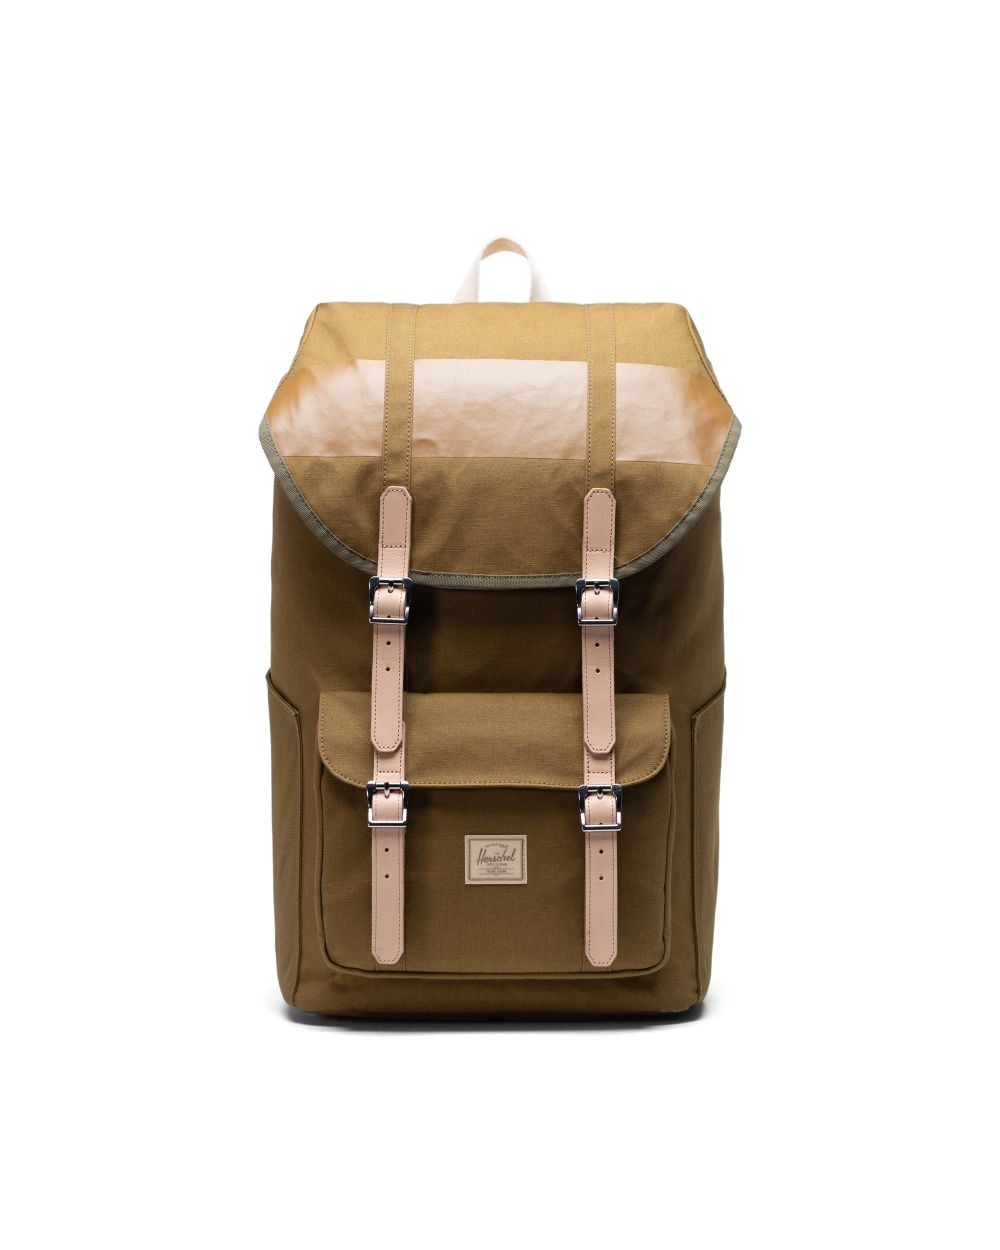 Little America Backpack - Butternut